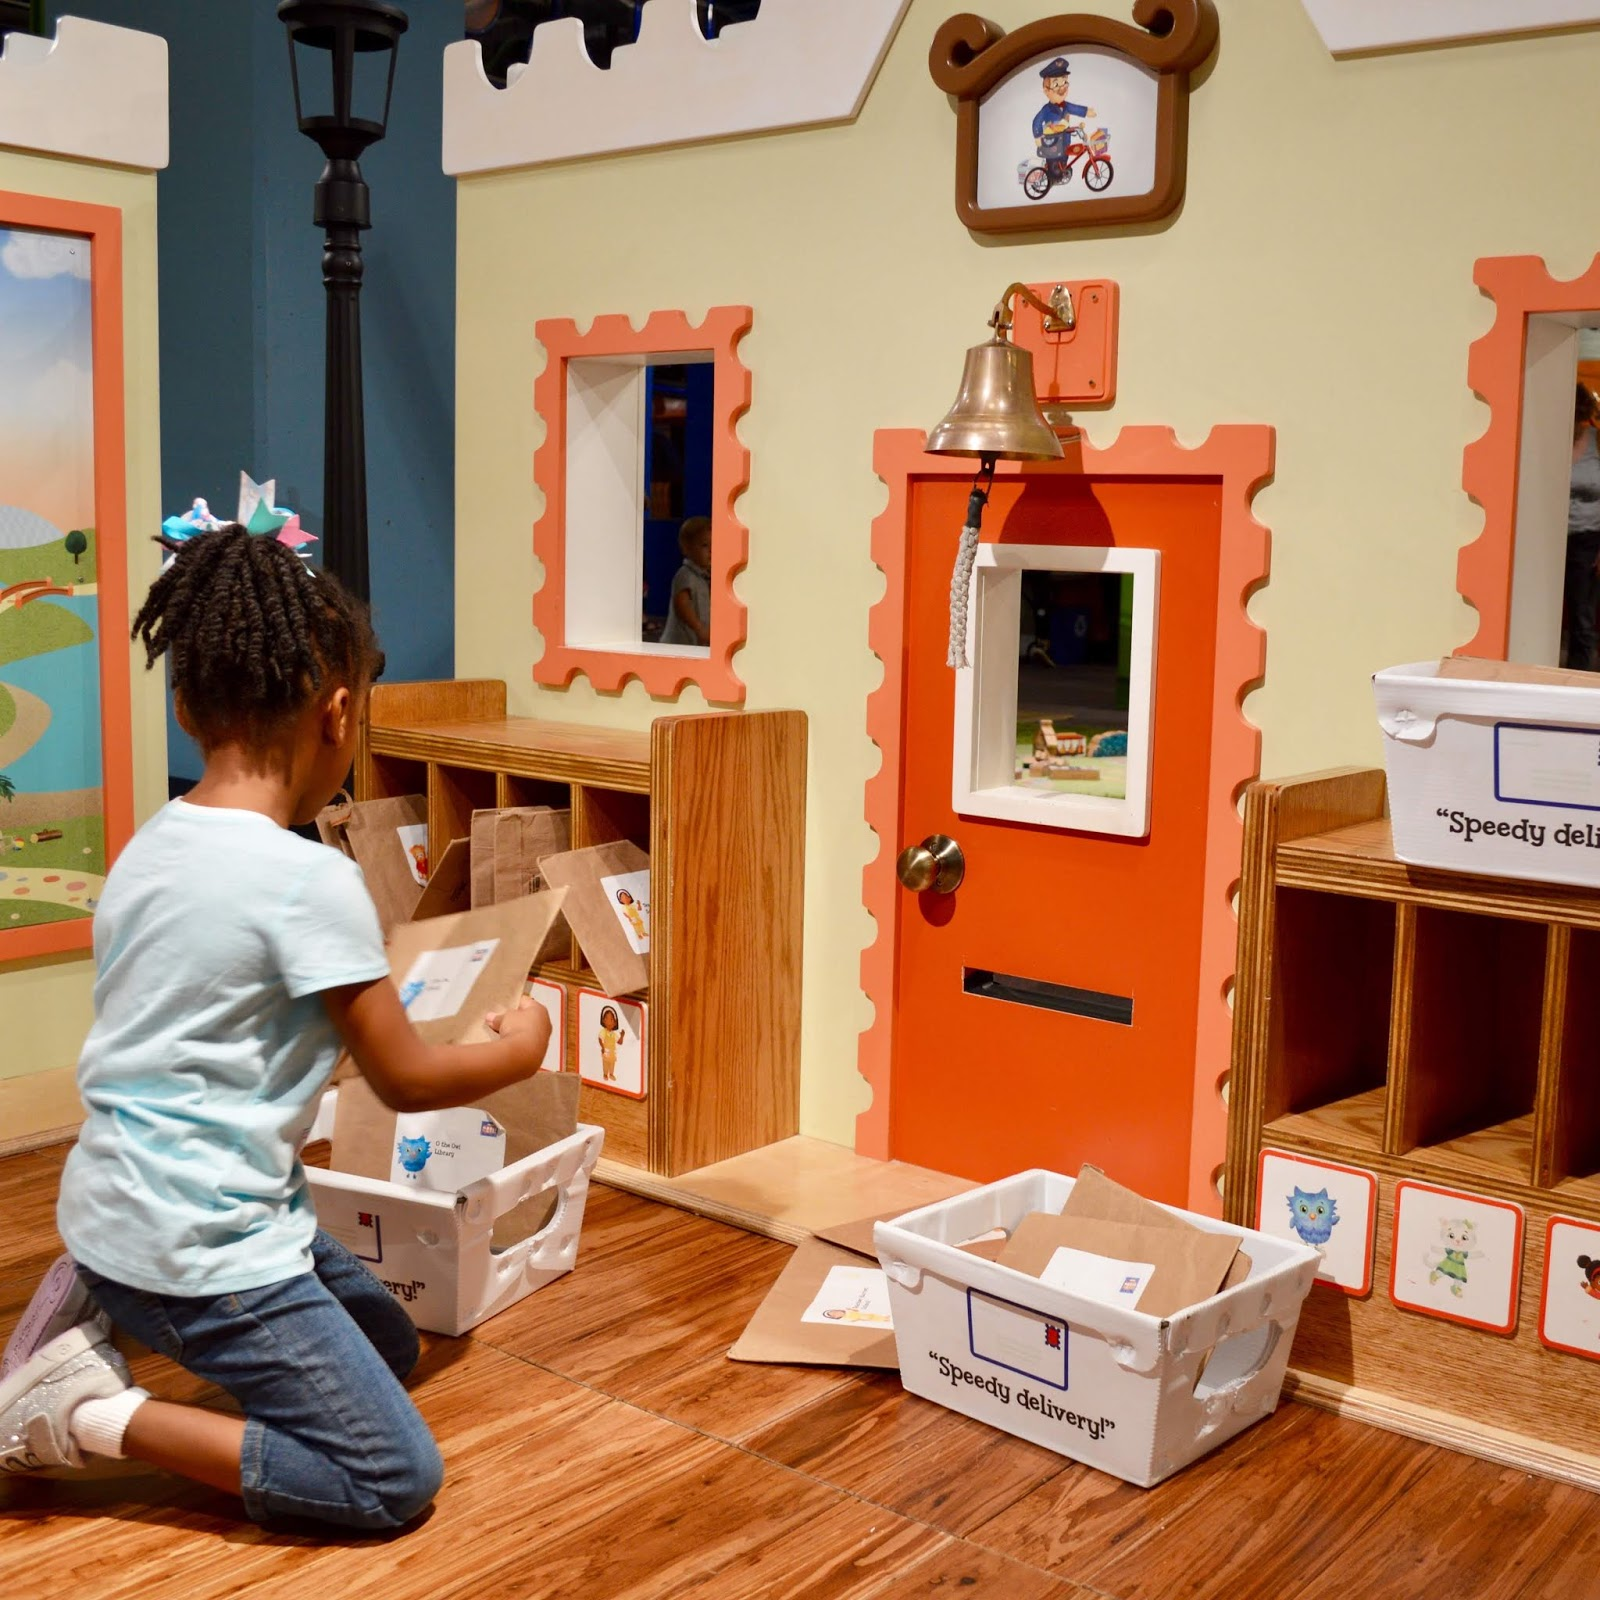 The Daily April N Ava: 6 of the Best Memberships For Kids in Atlanta